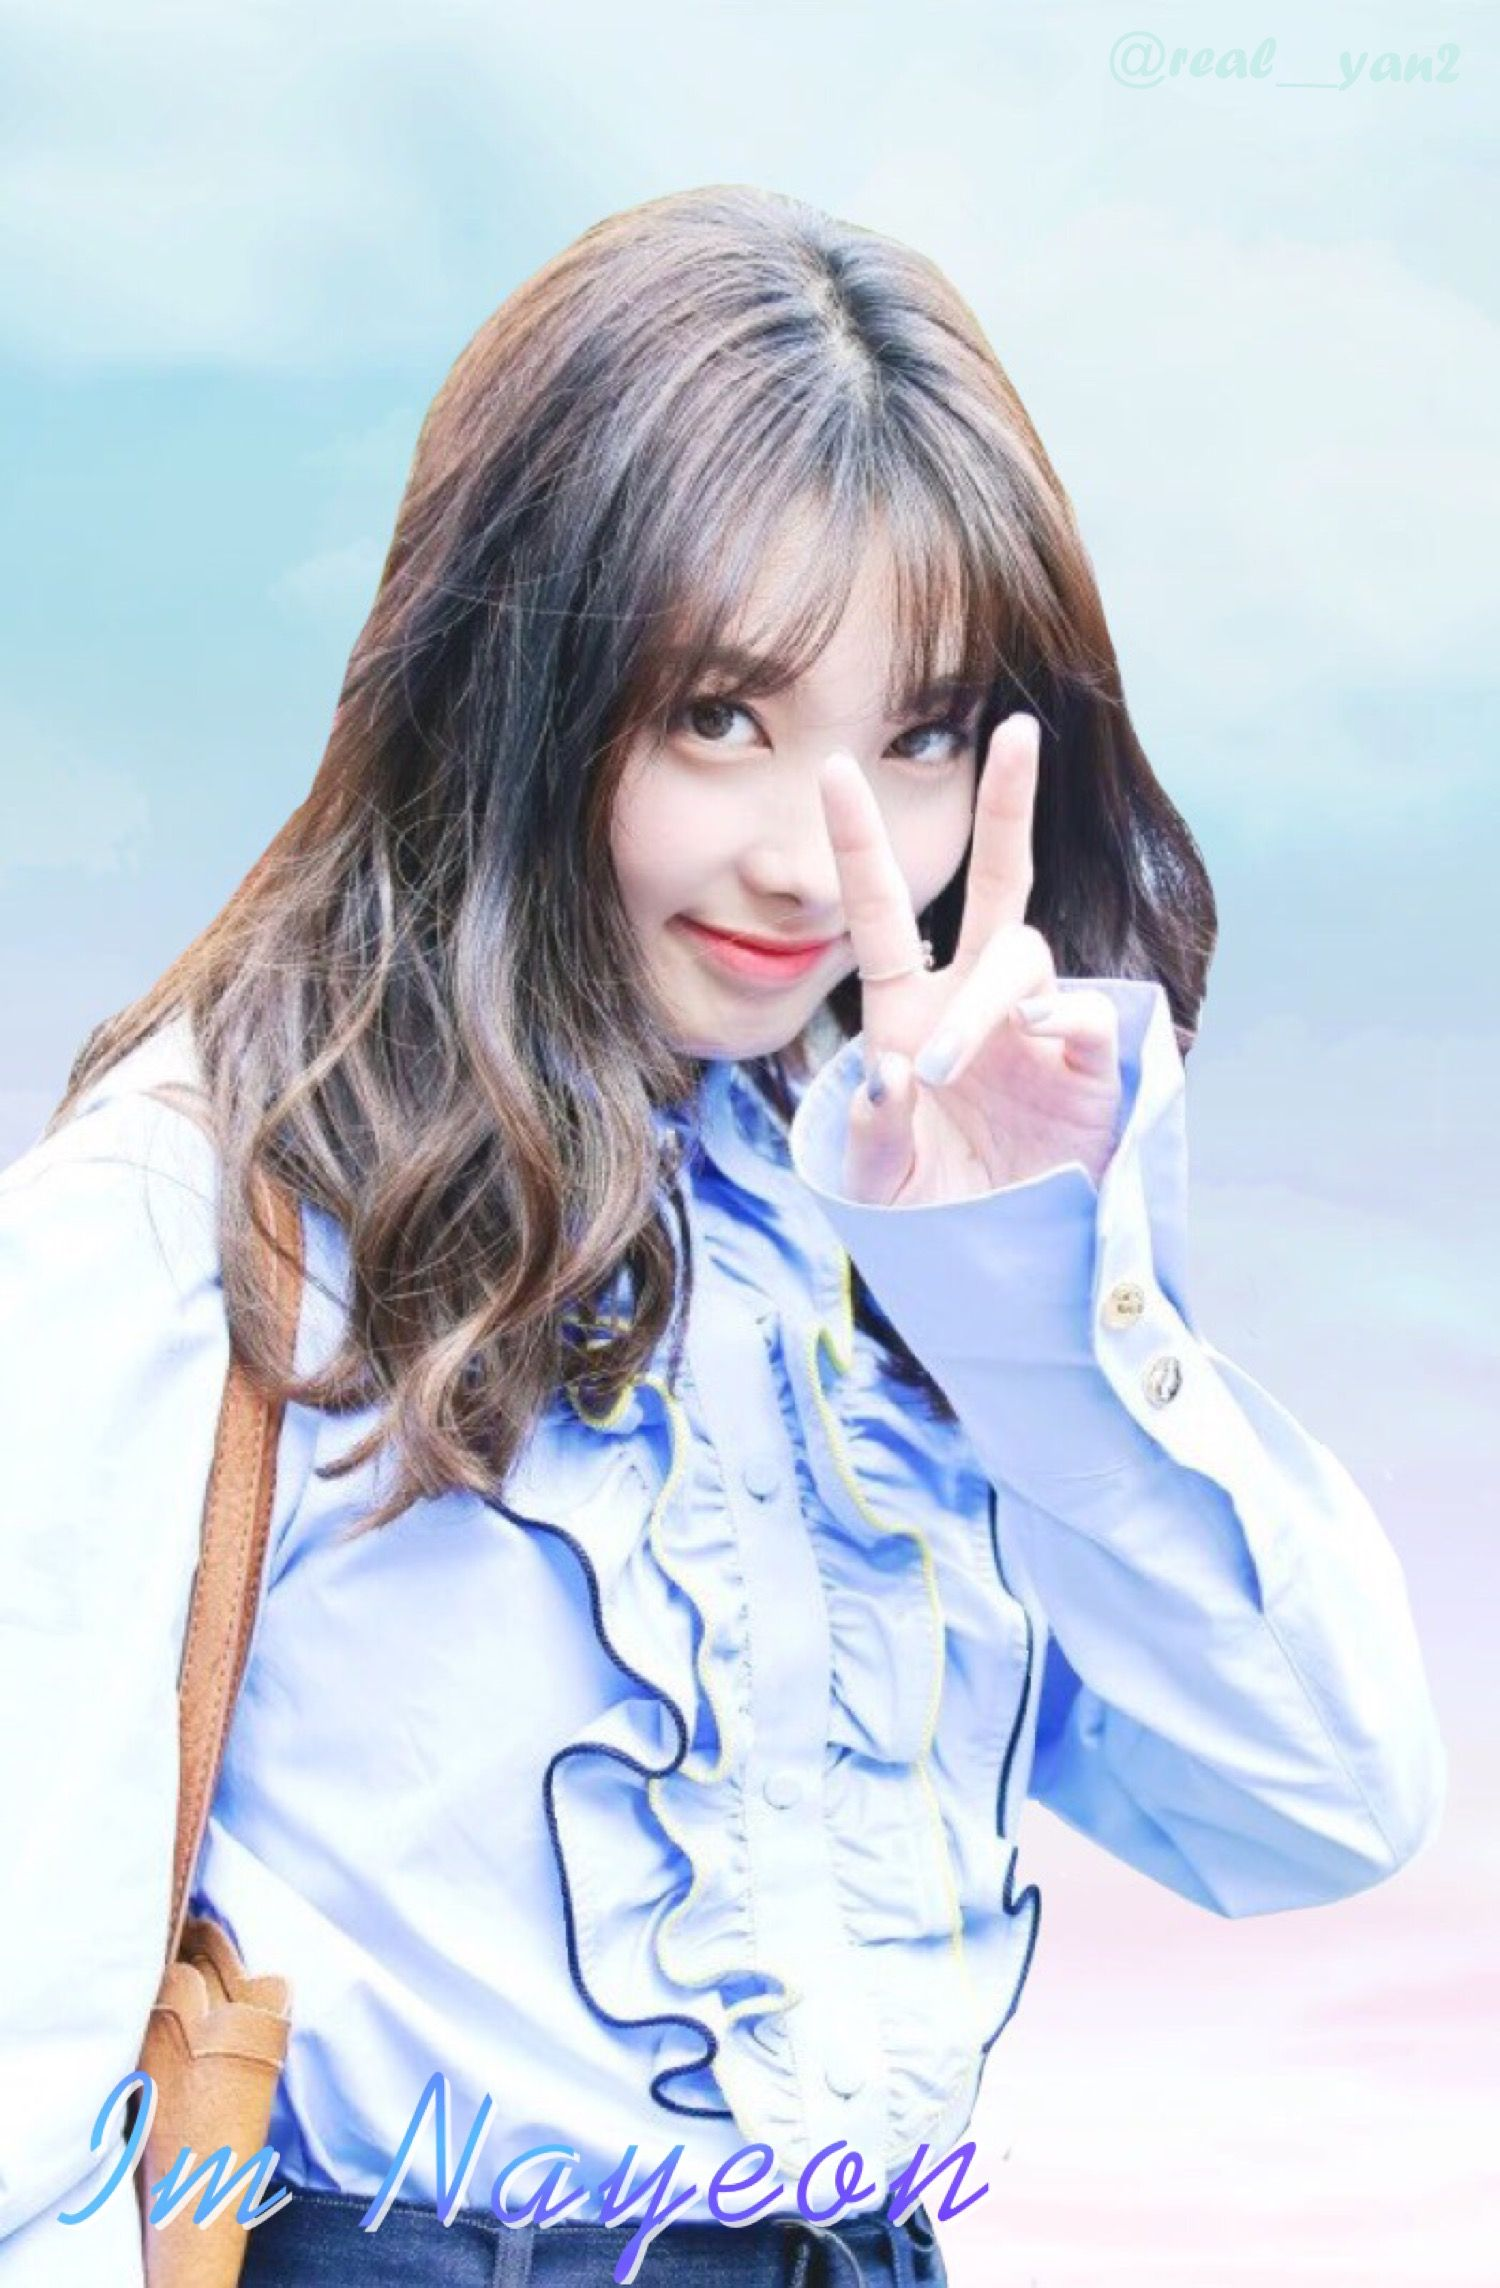 Nayeon Wallpaper Twice Pinterest Nayeon Twice Nayeon And